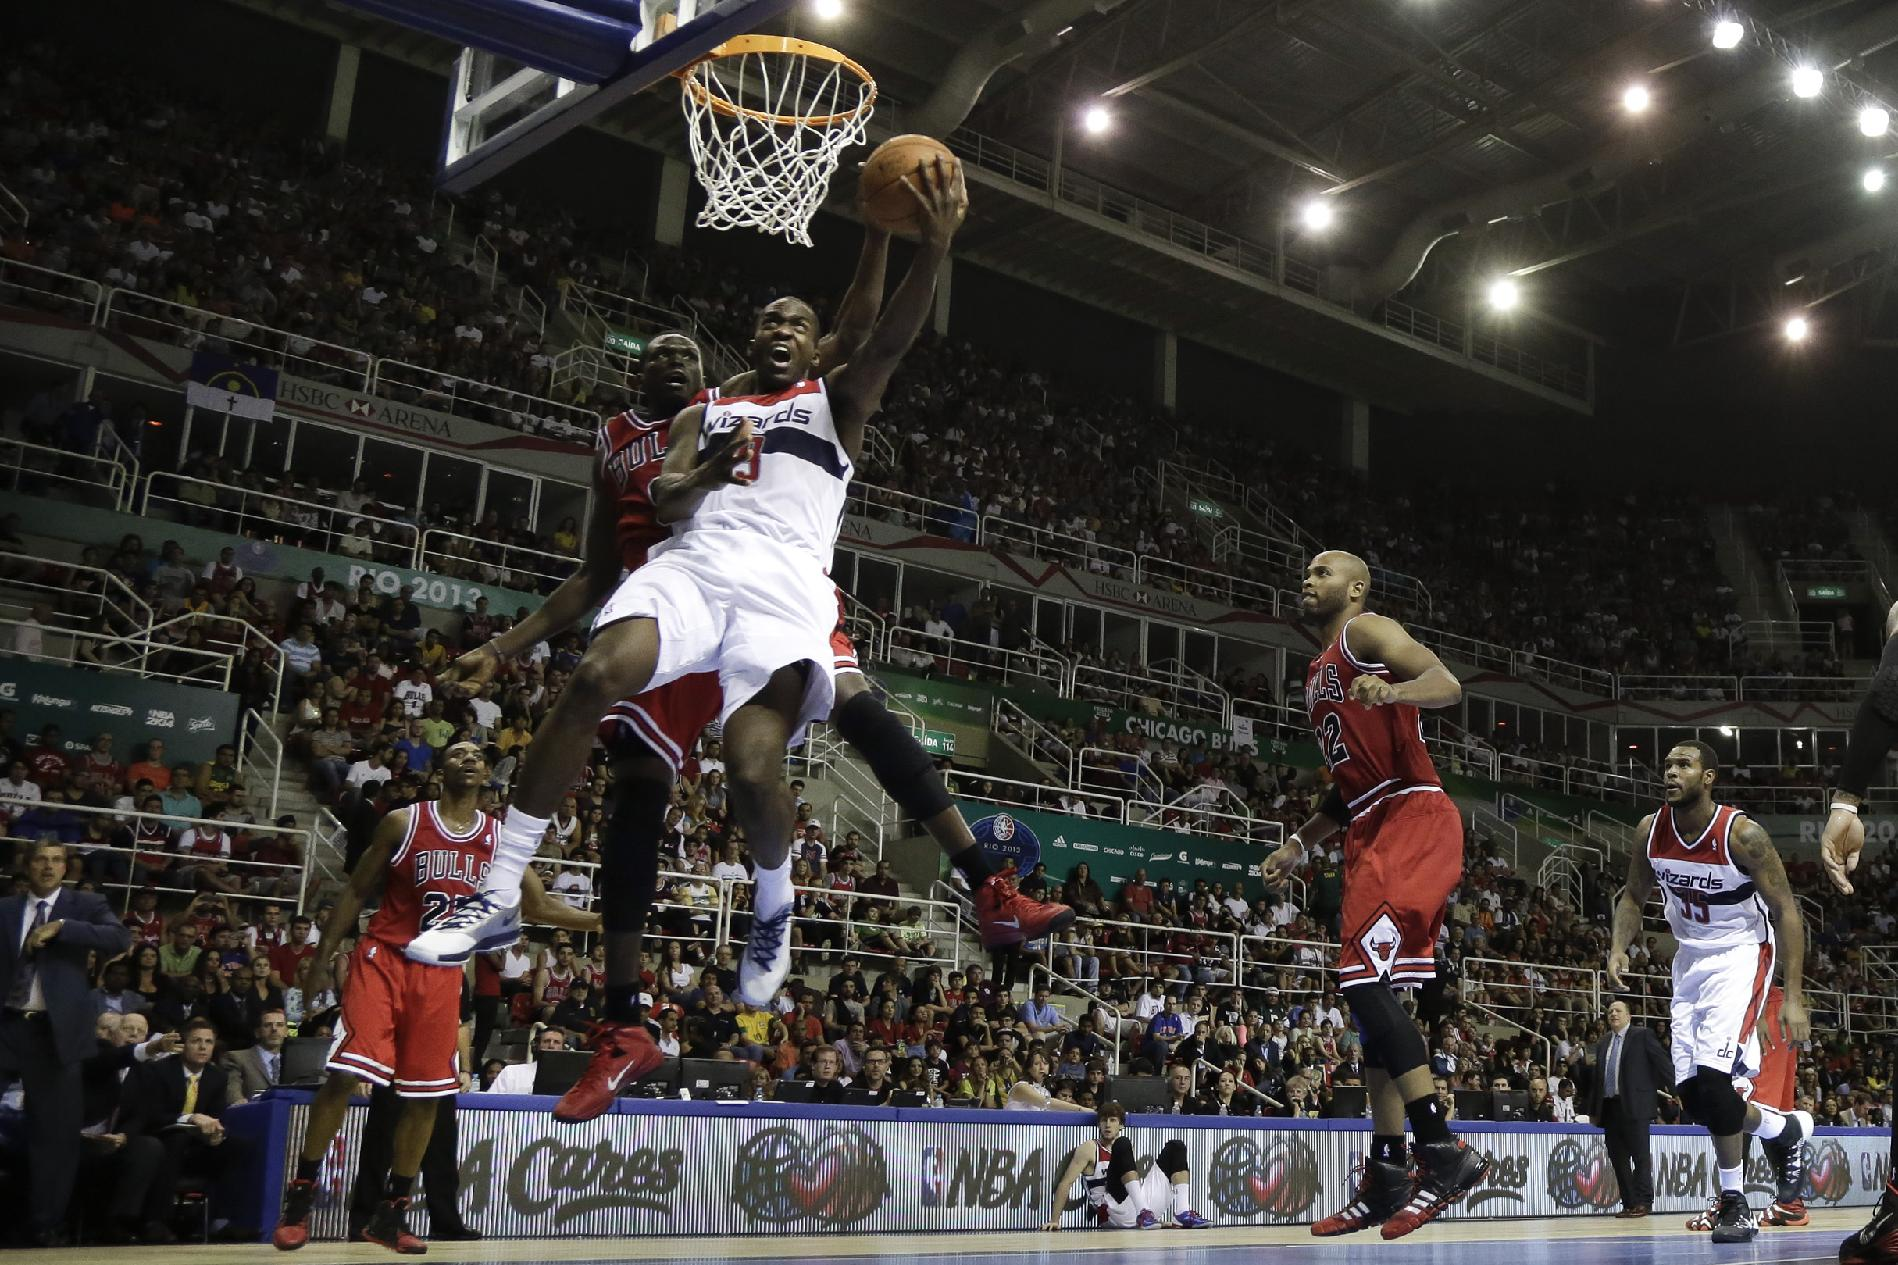 Washington Wizards' Martell Webster, top right, makes a move to the basket as he is guarded by Chicago Bulls' Luol Deng  during the second half of an NBA preseason basketball game in Rio de Janeiro, Brazil, Saturday, Oct. 12, 2013. Chicago Bulls defeated Washington Wizards 83-81